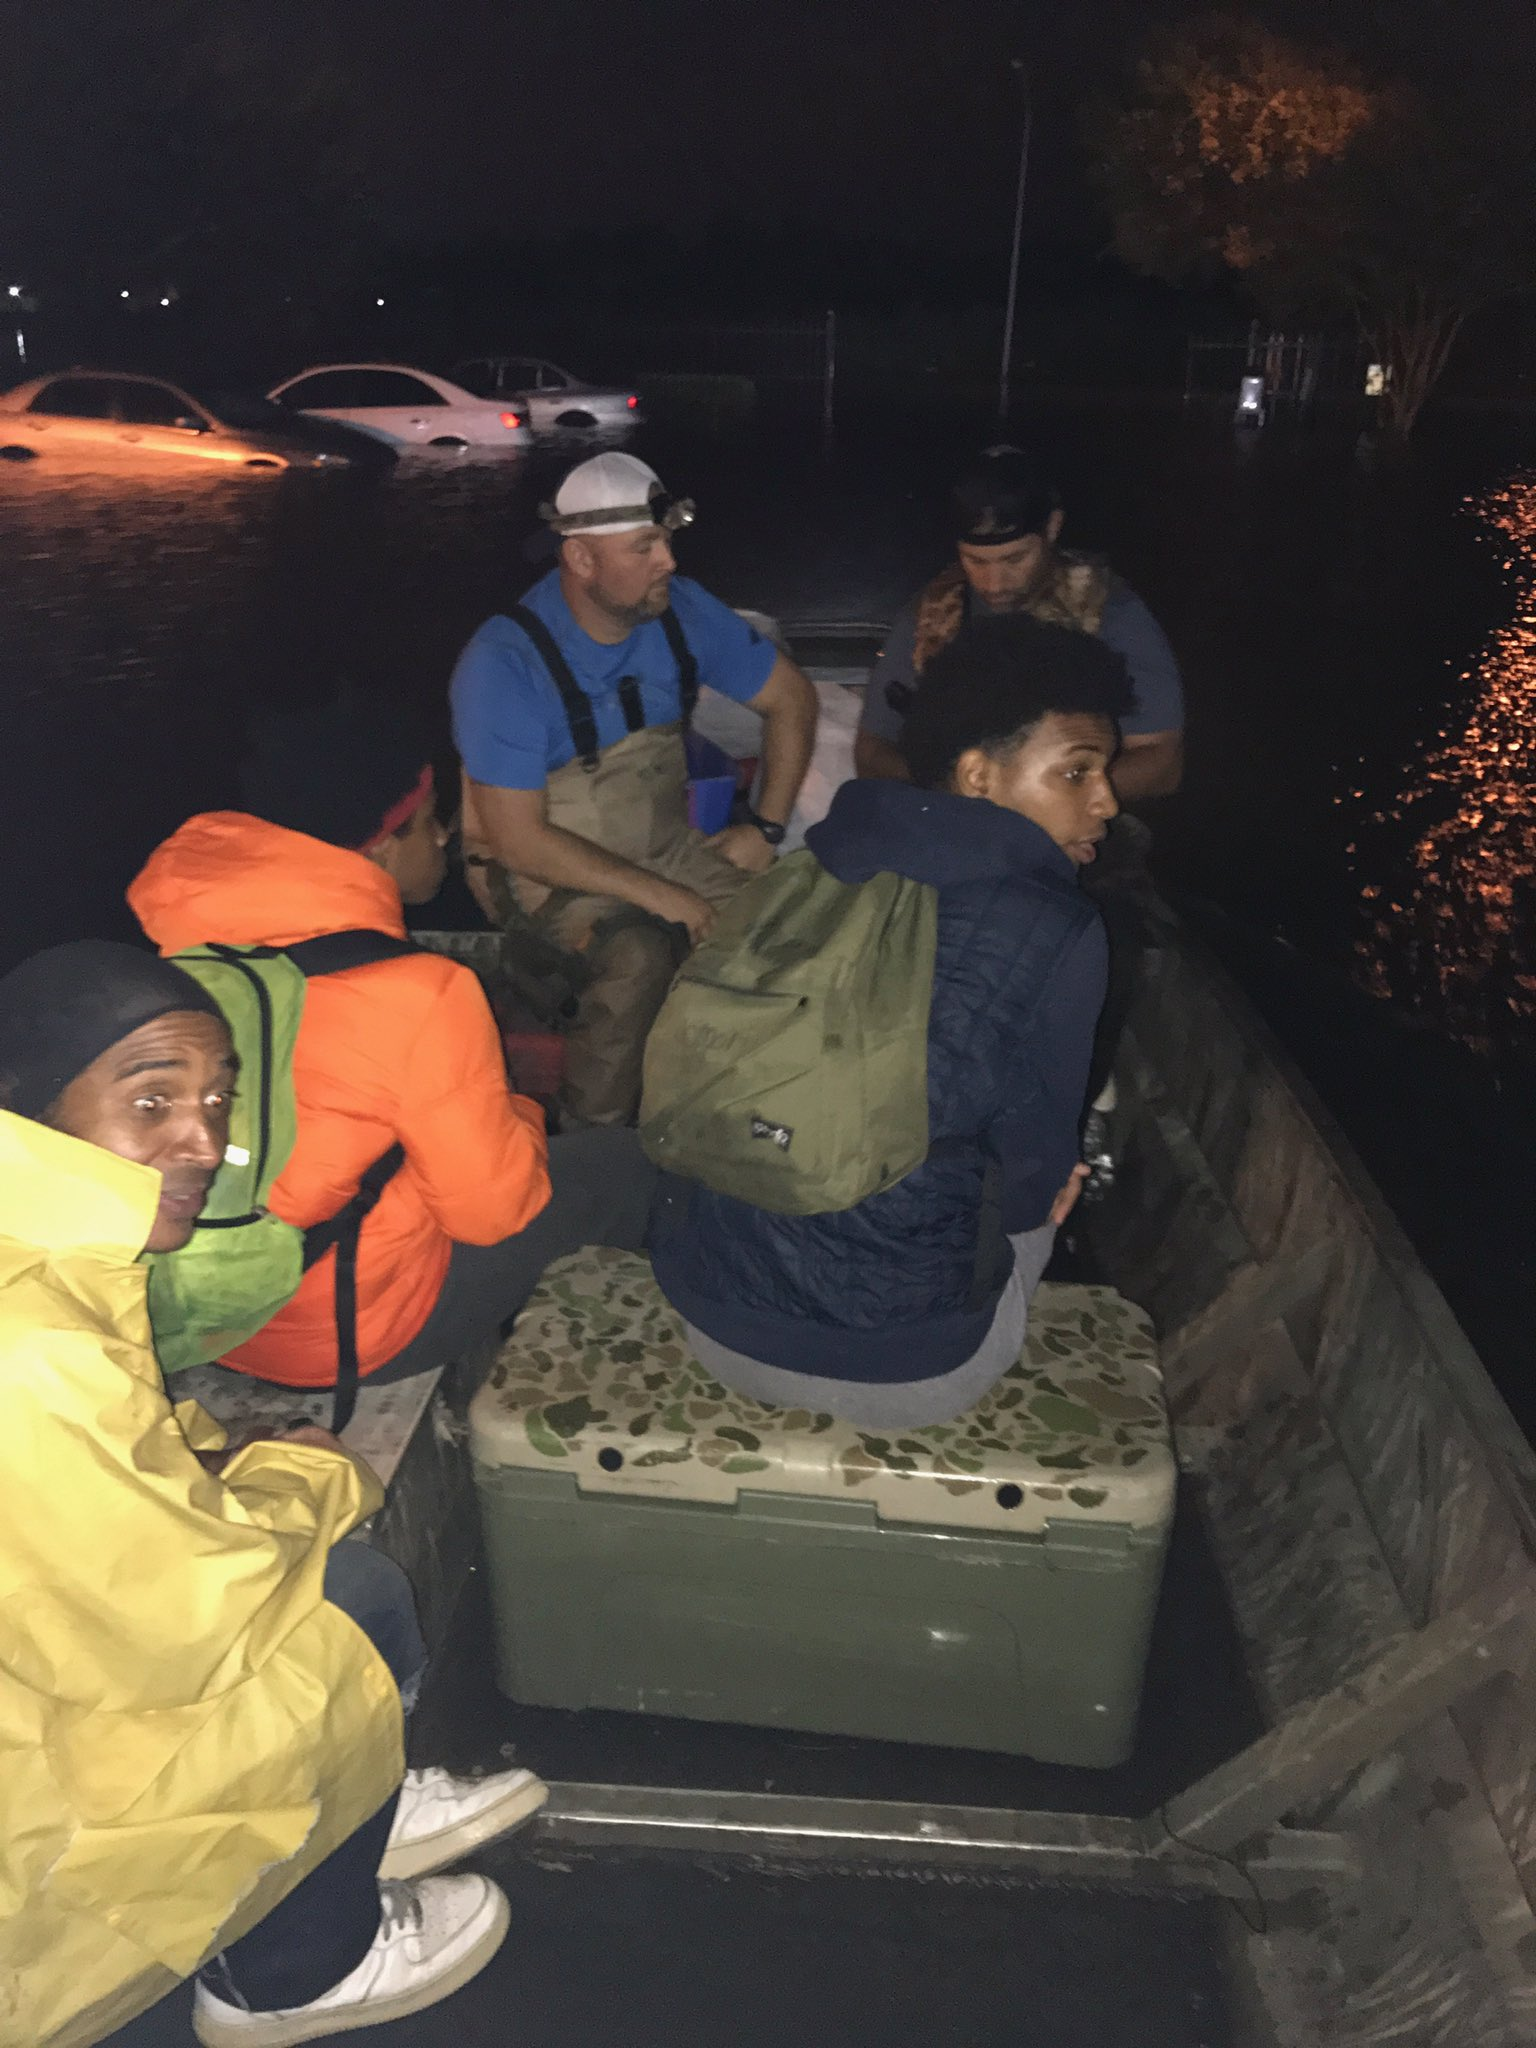 My friend Casey using boat helping 2boys and getting them to safety. powerful to see people helping strangers. https://t.co/TfLgw6LMYa